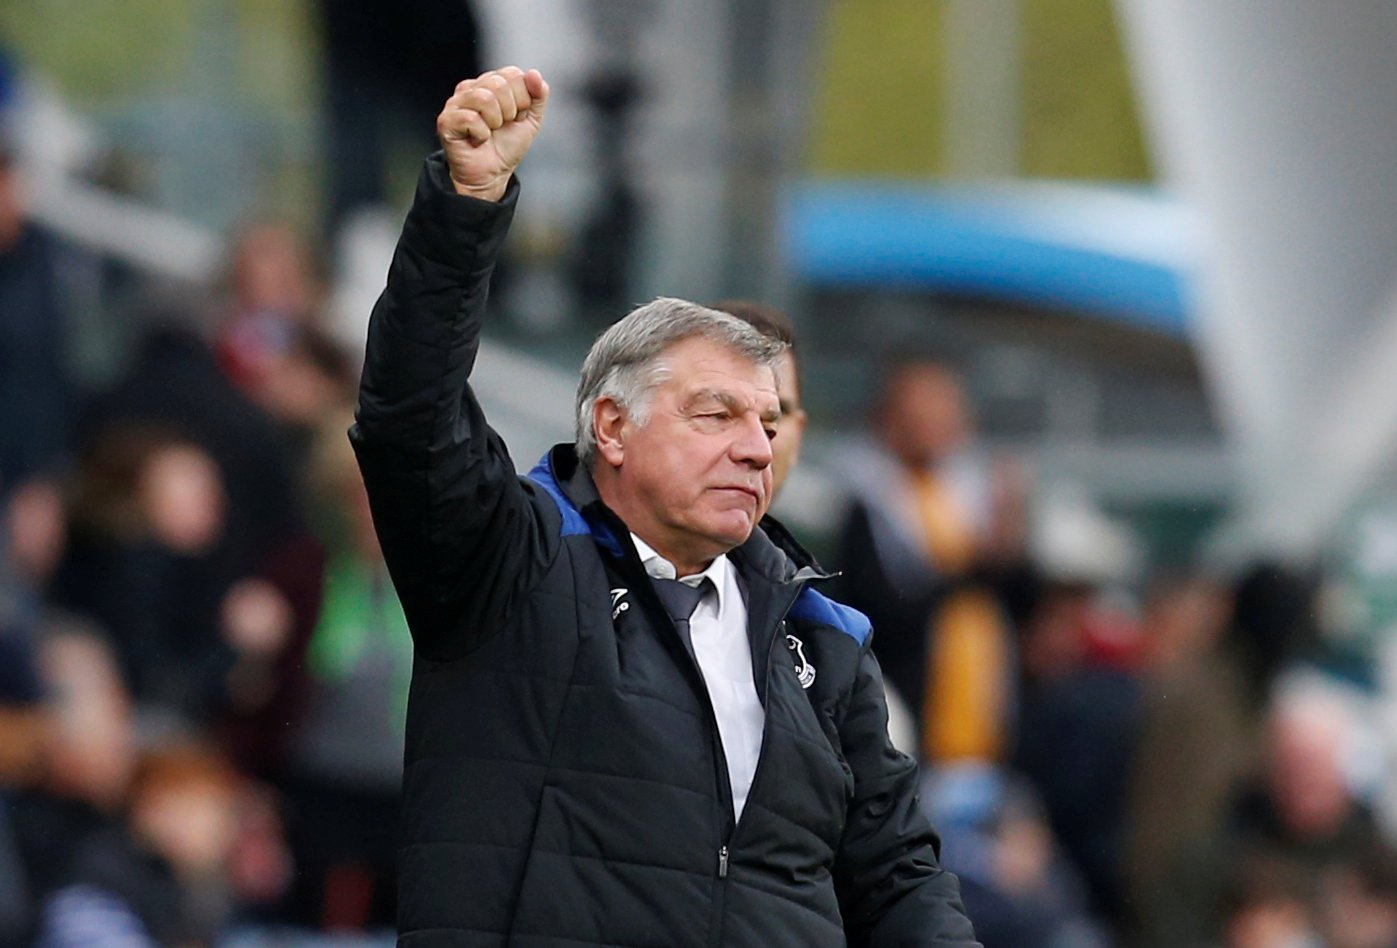 Everton manager Sam Allardyce celebrates victory over Huddersfield Town